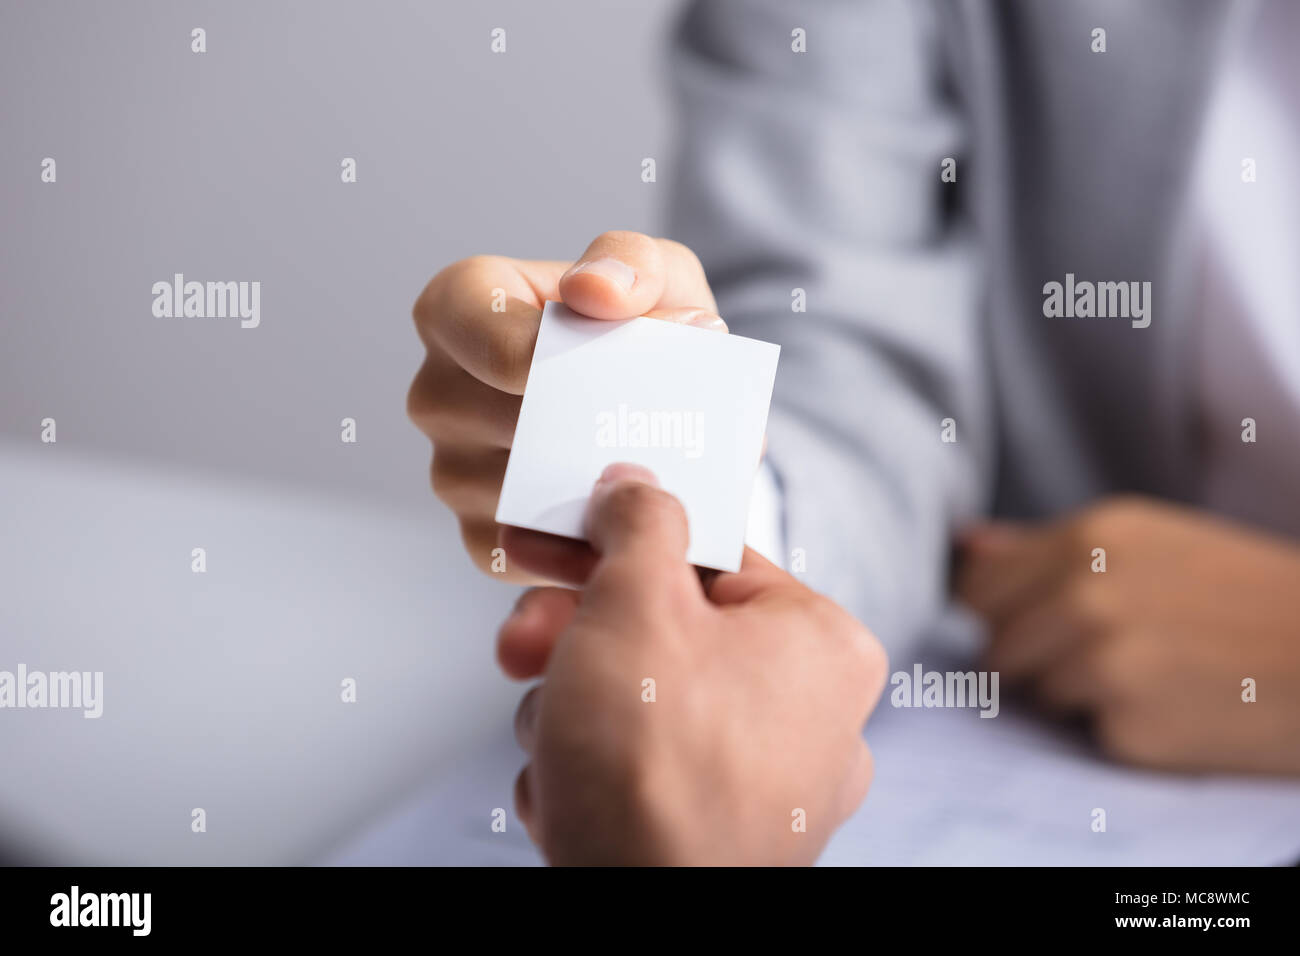 Close-up Of Businessperson's Hand Giving Blank White Card To Partner Stock Photo